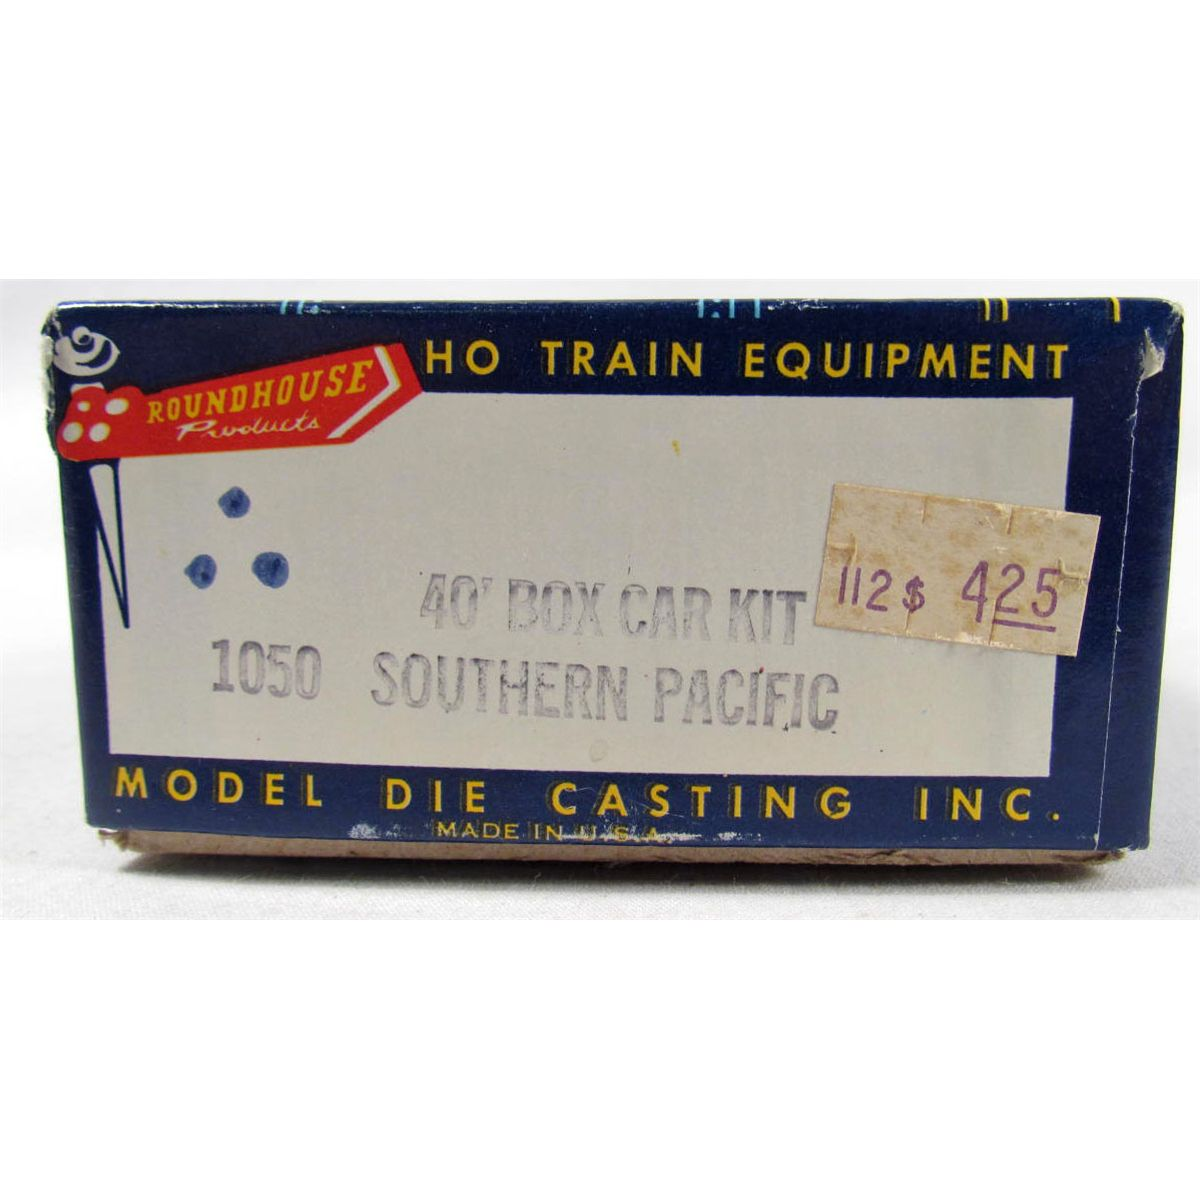 VINTAGE SOUTHERN PACIFIC TRAIN CAR - ROUNDHOUSE PRODUCTS - HO SCALE